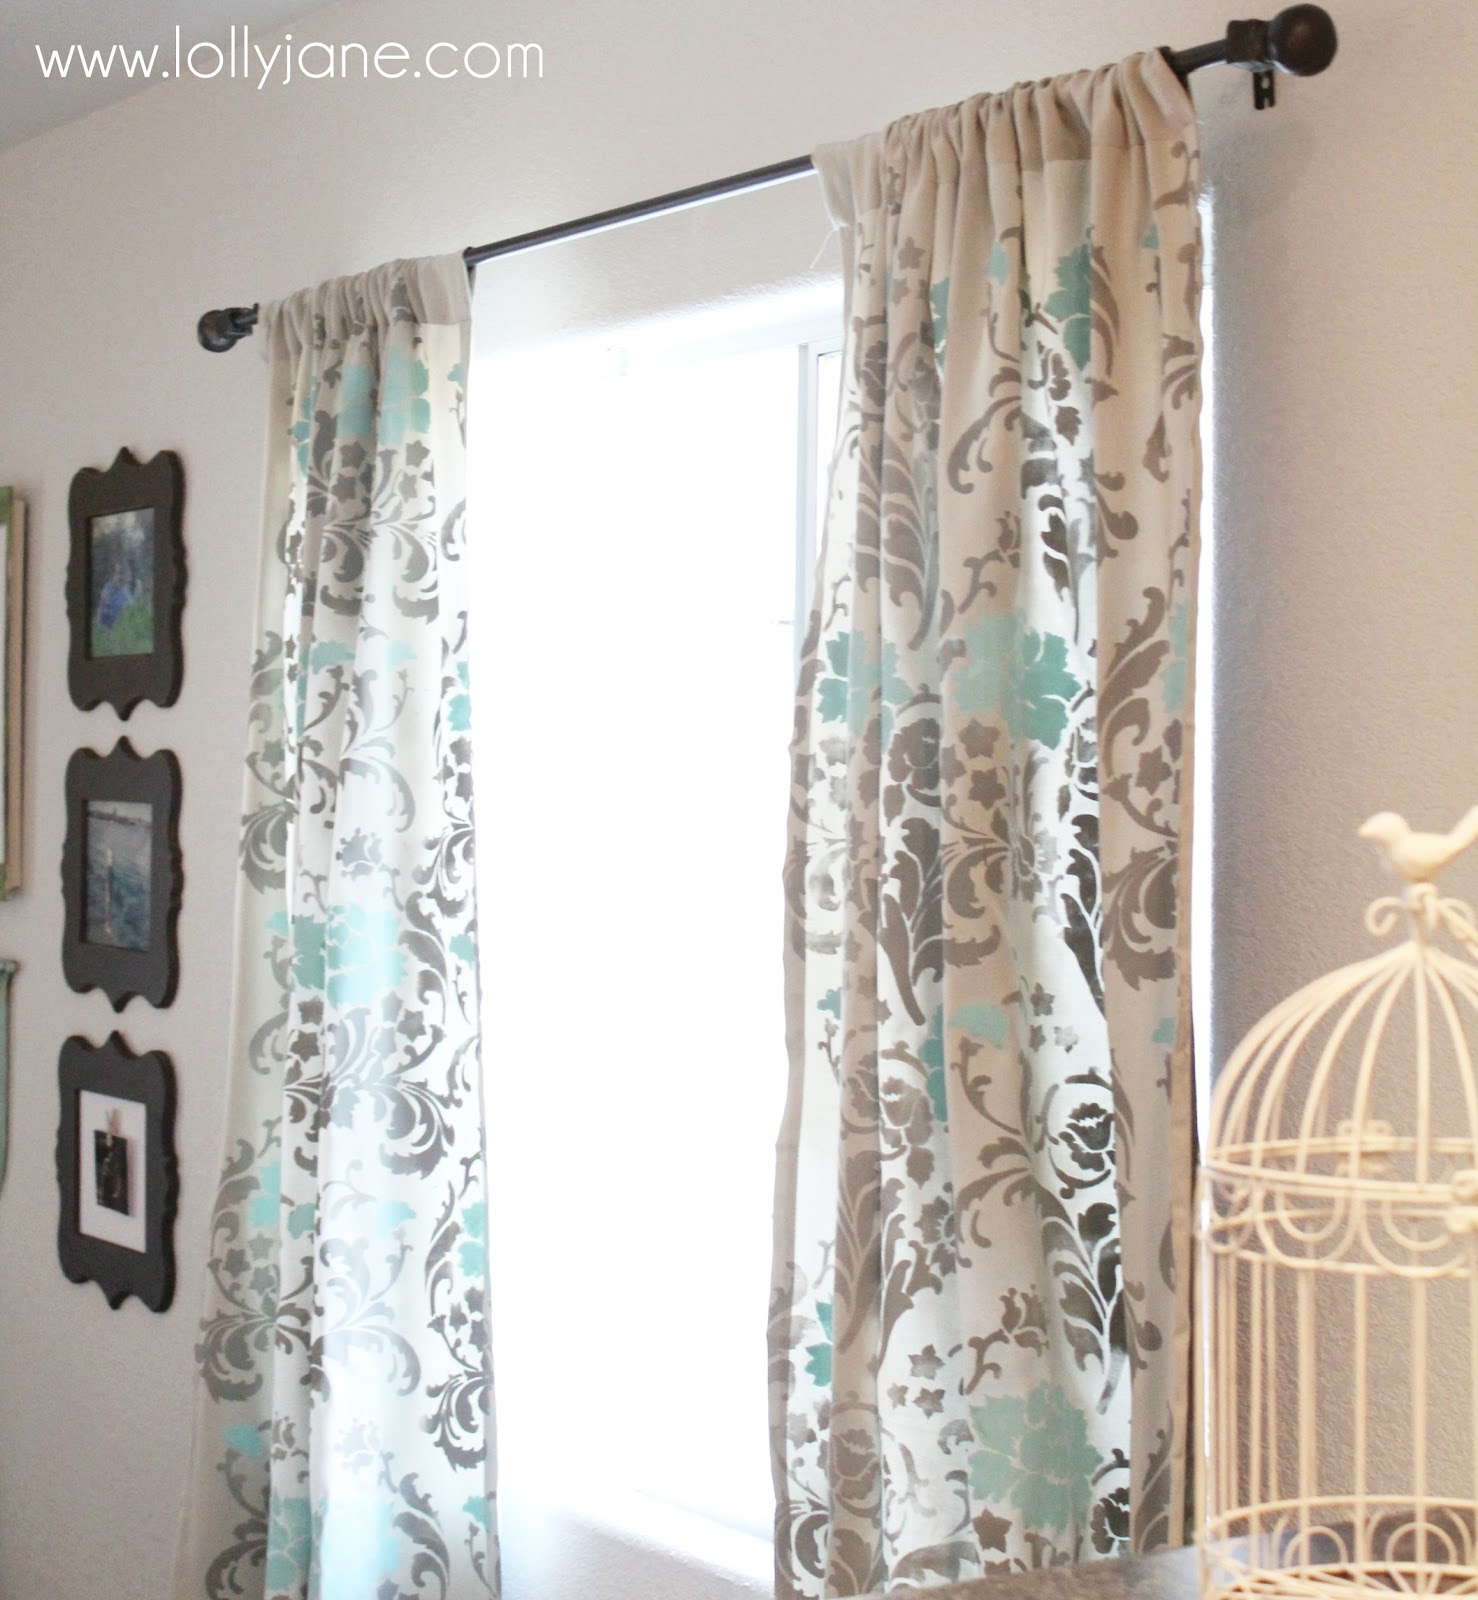 Someday Crafts Stenciled Curtains